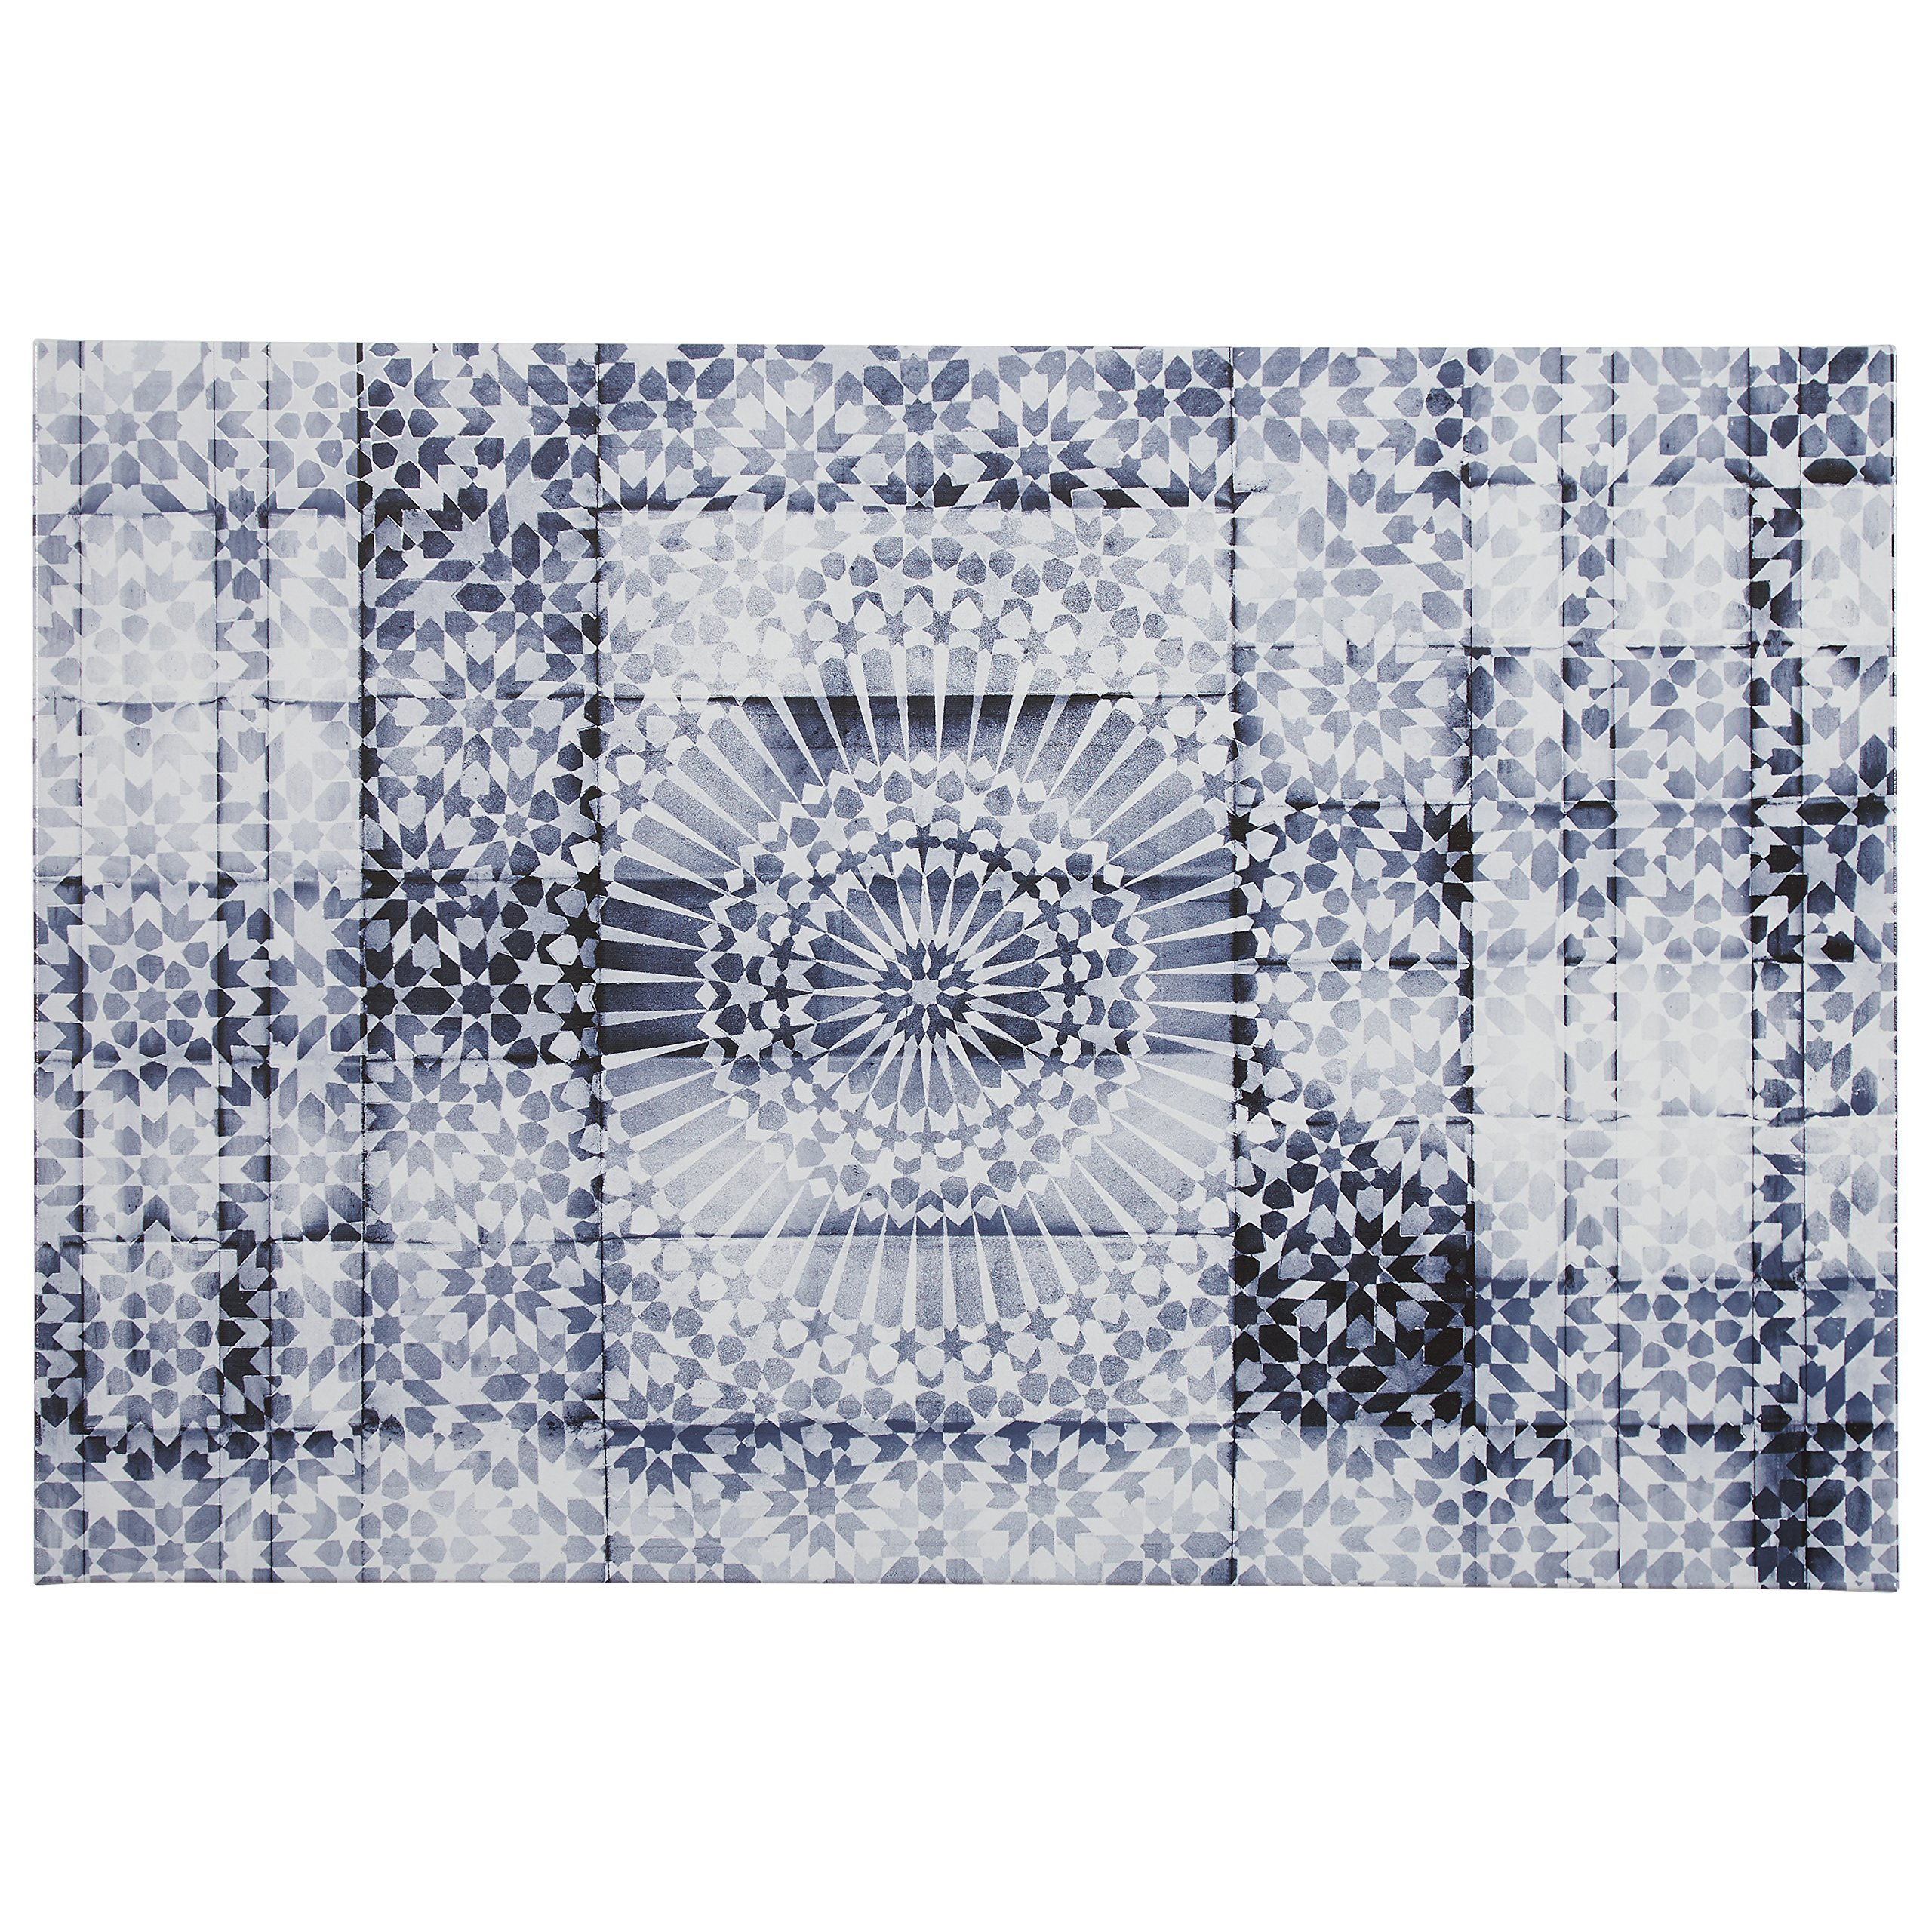 Contemporary Blue and White Mandala Print on Canvas, 36'' x 24''